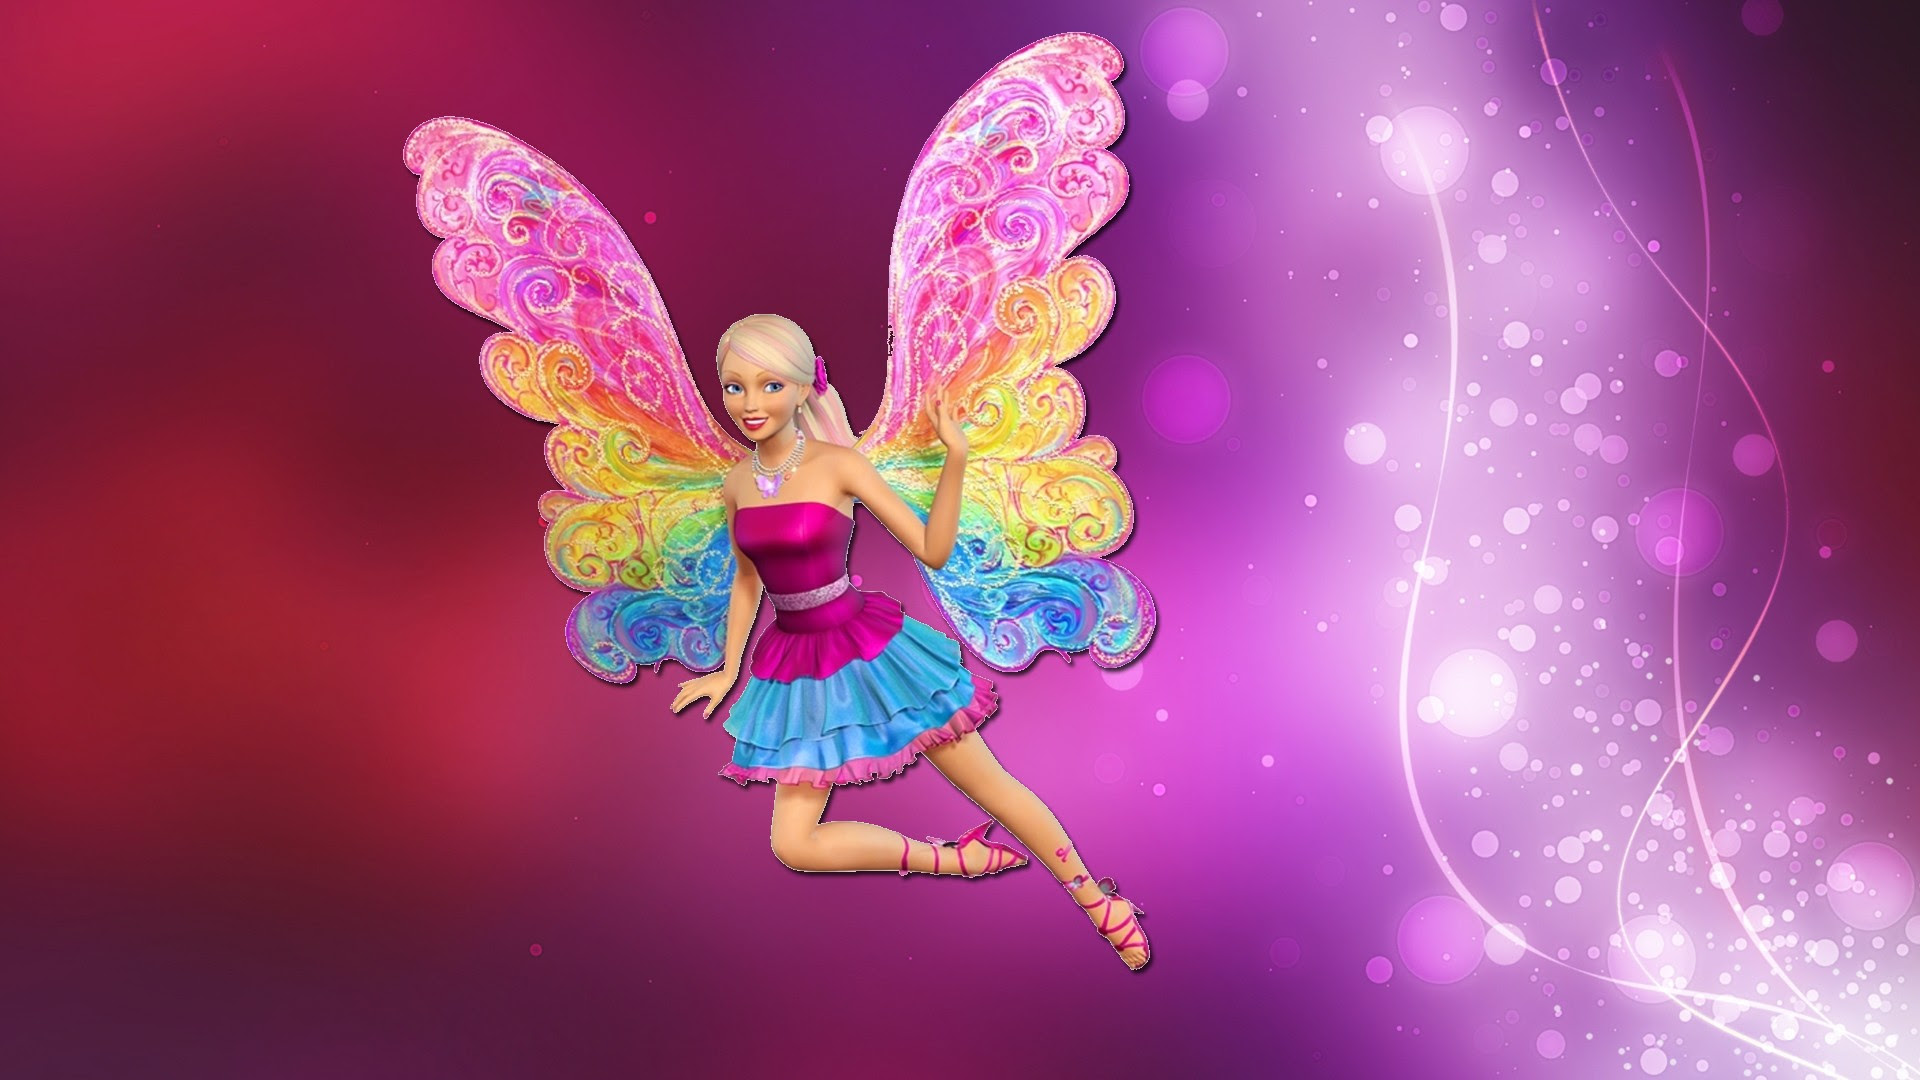 Barbie Wallpapers Hd Backgrounds Images Pics Photos Free Download